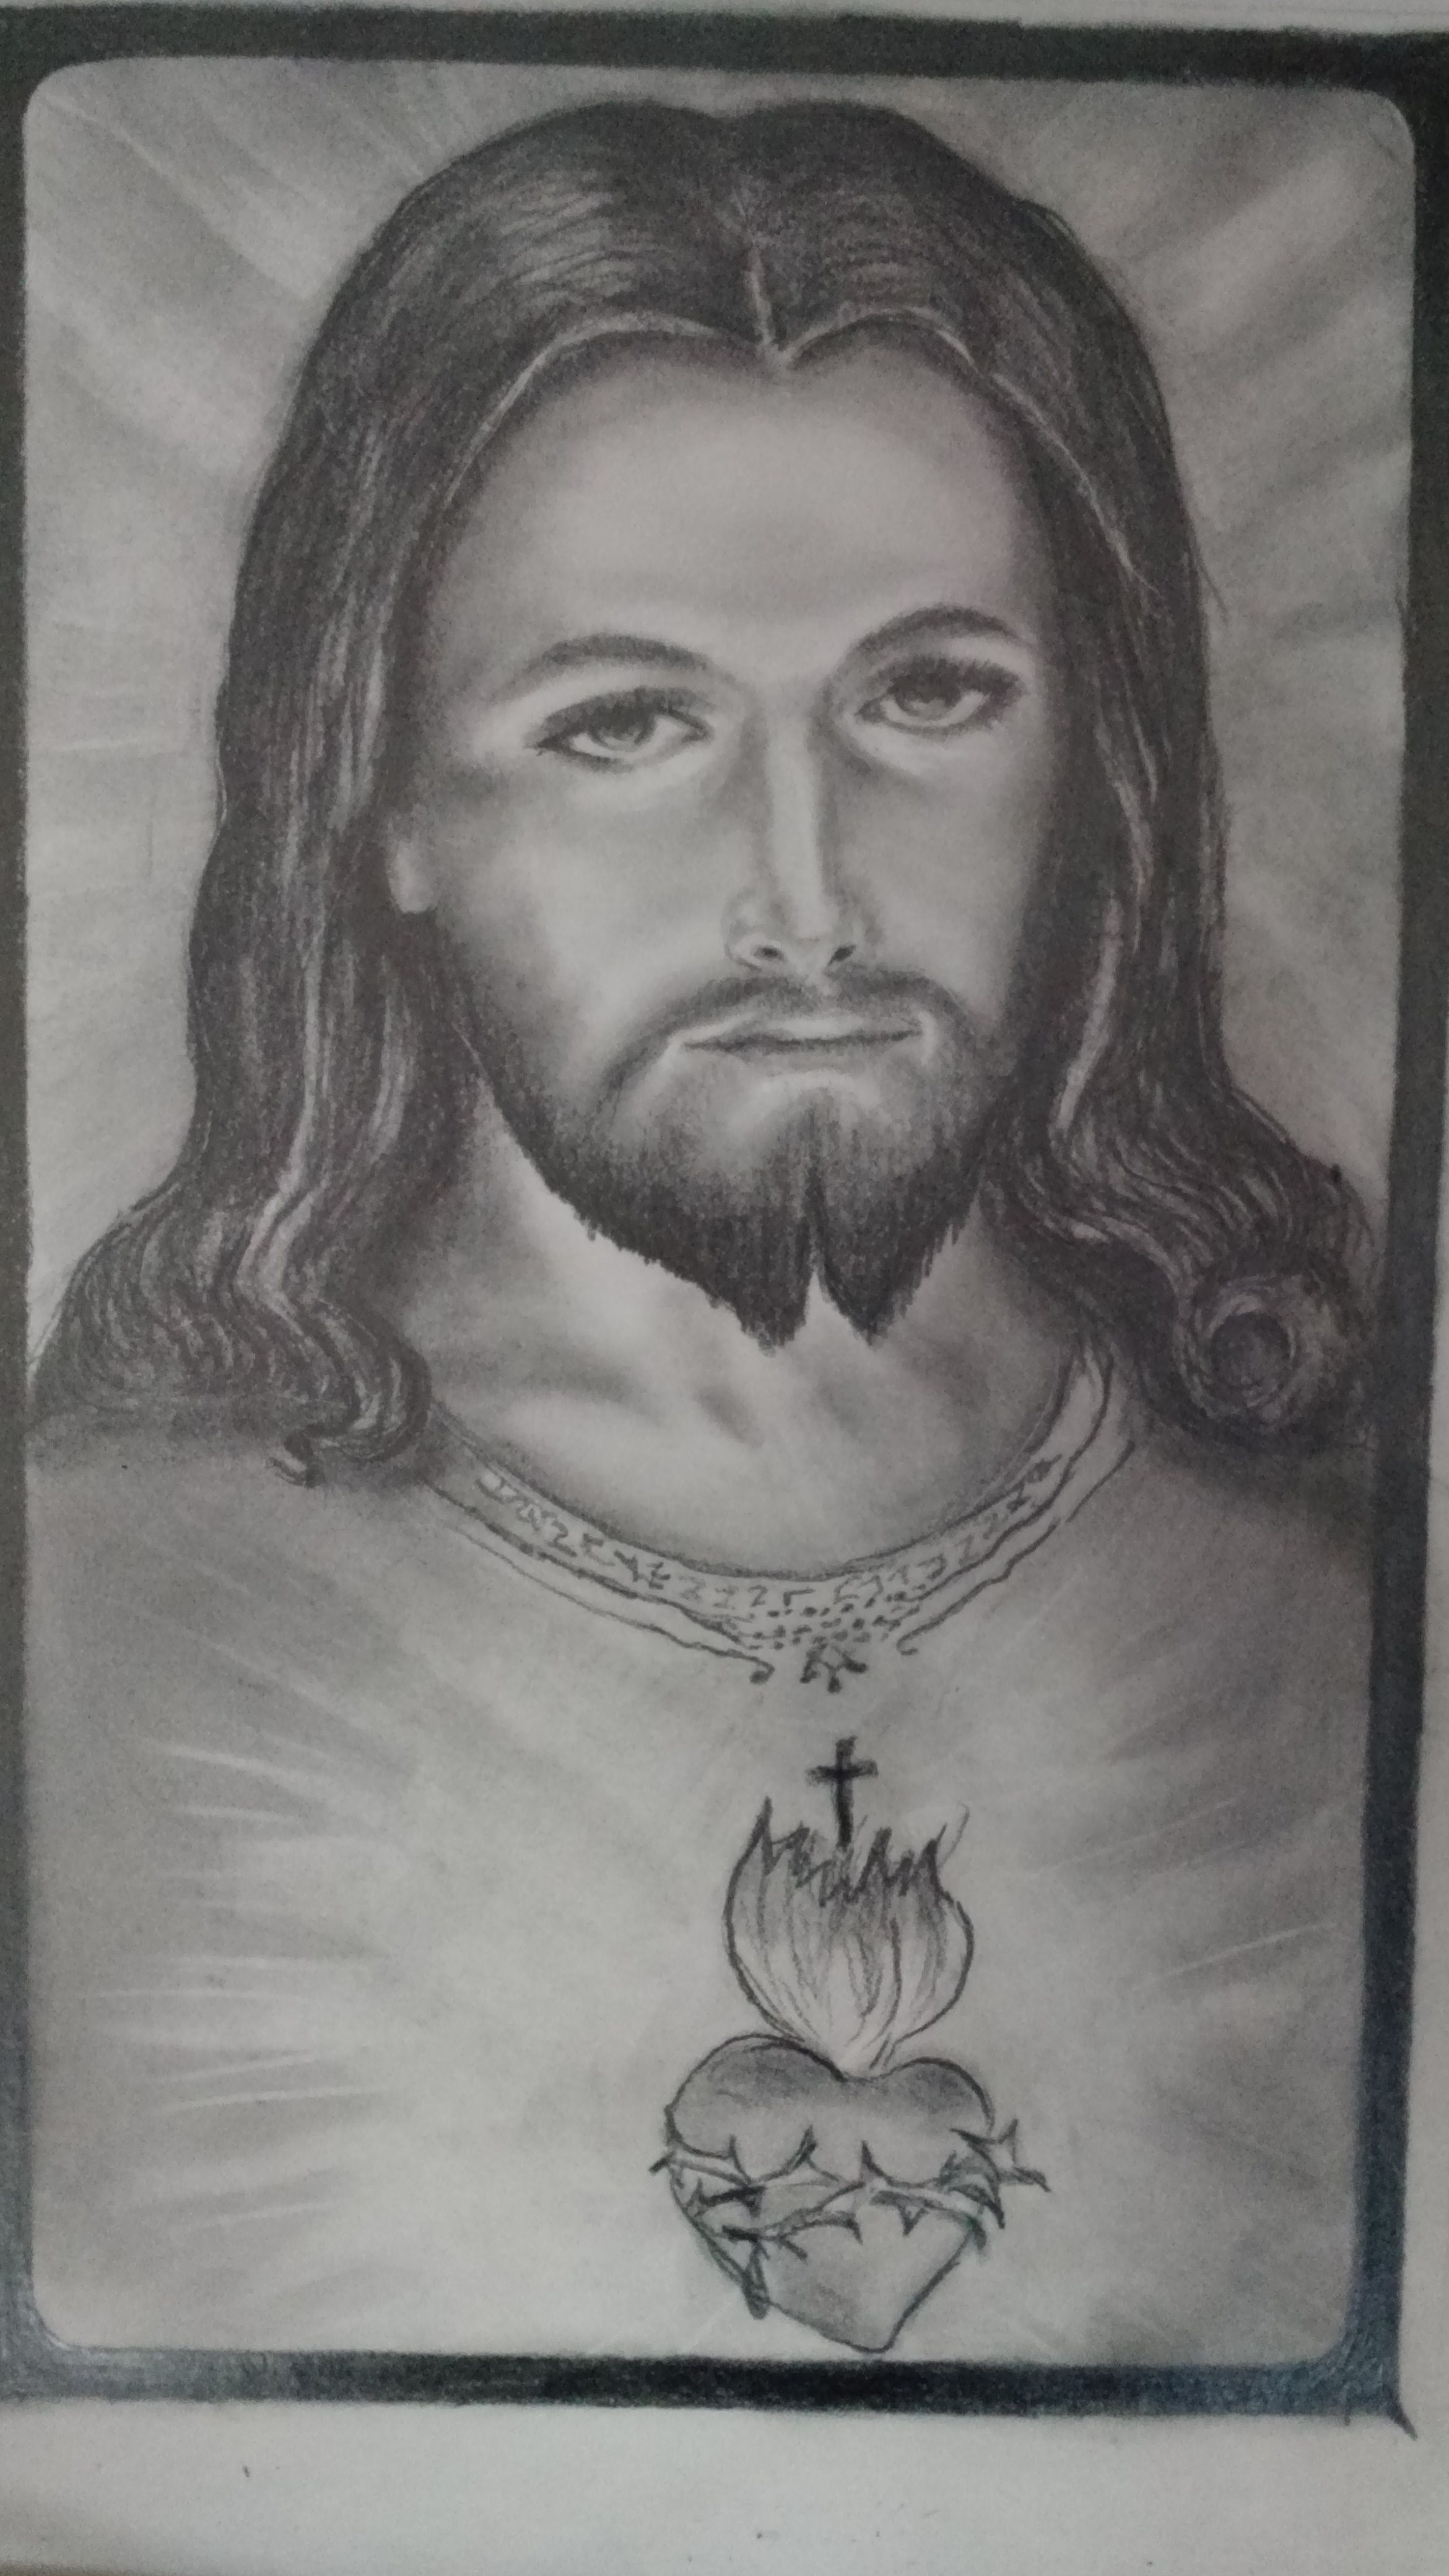 Graphite drawing jesus christ in 2019 graphite drawings